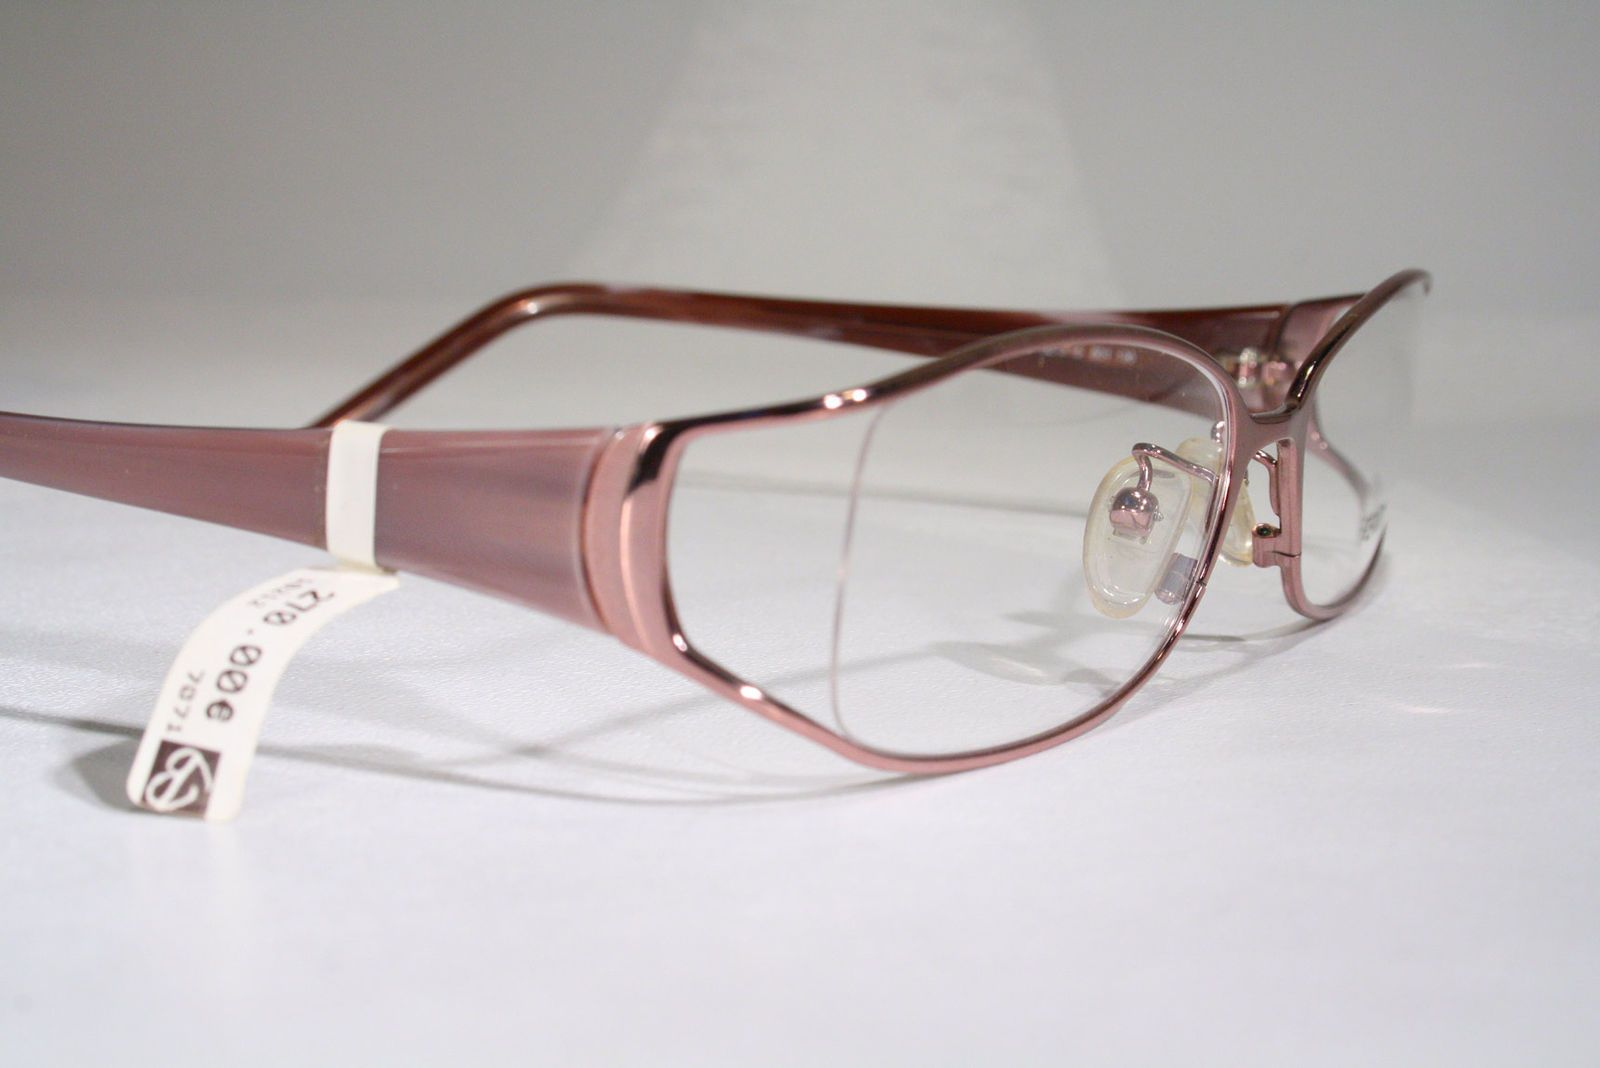 5d709df8ce9 FENDI Women s Rose Gold Pink Semi Rimless Wide Temples Optical Eyeglasses  Frames Glasses + Case   eBay (RipVanW)